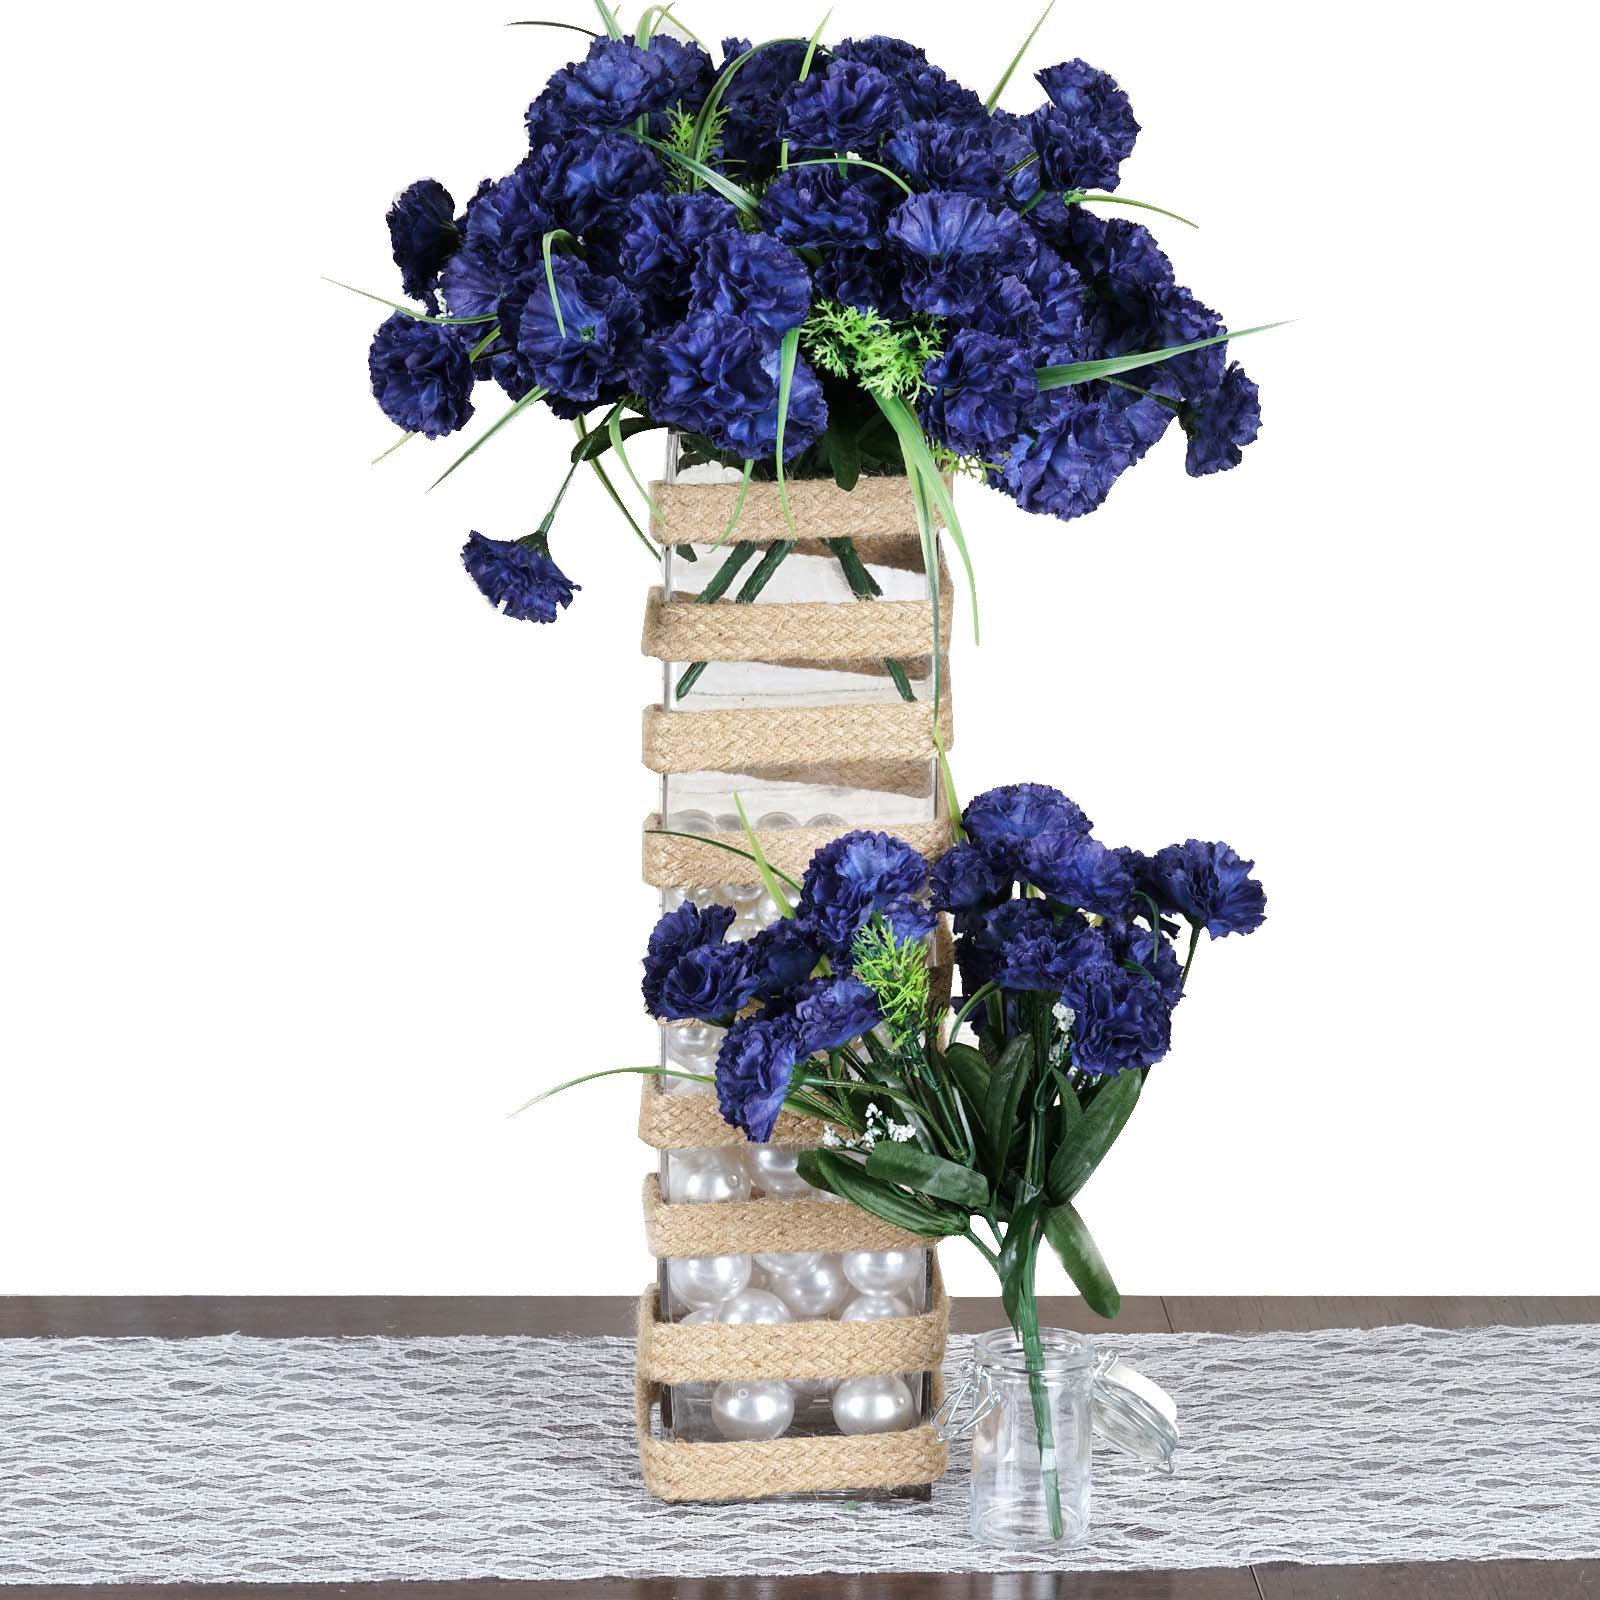 252 Carnation Flowers Navy Blue Carnation Flower Artificial Flowers And Plants Mini Carnations